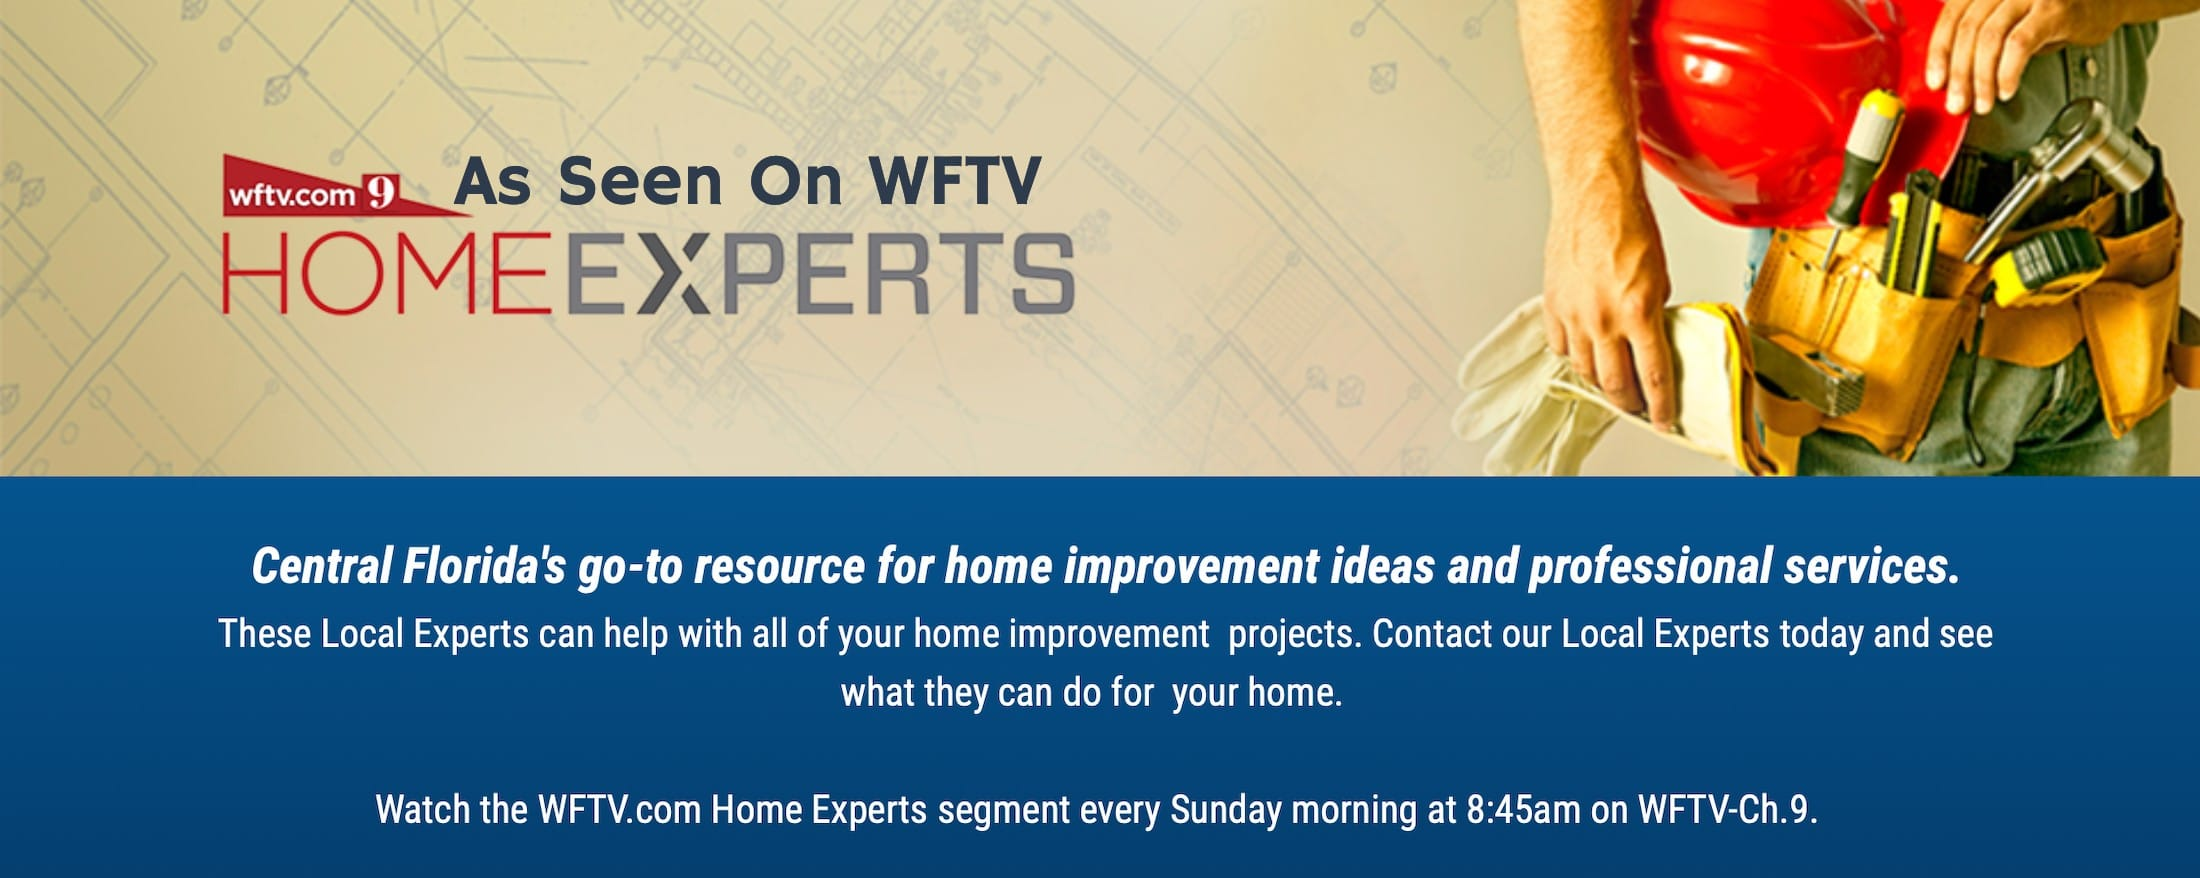 OCC911 WFTV Home Experts